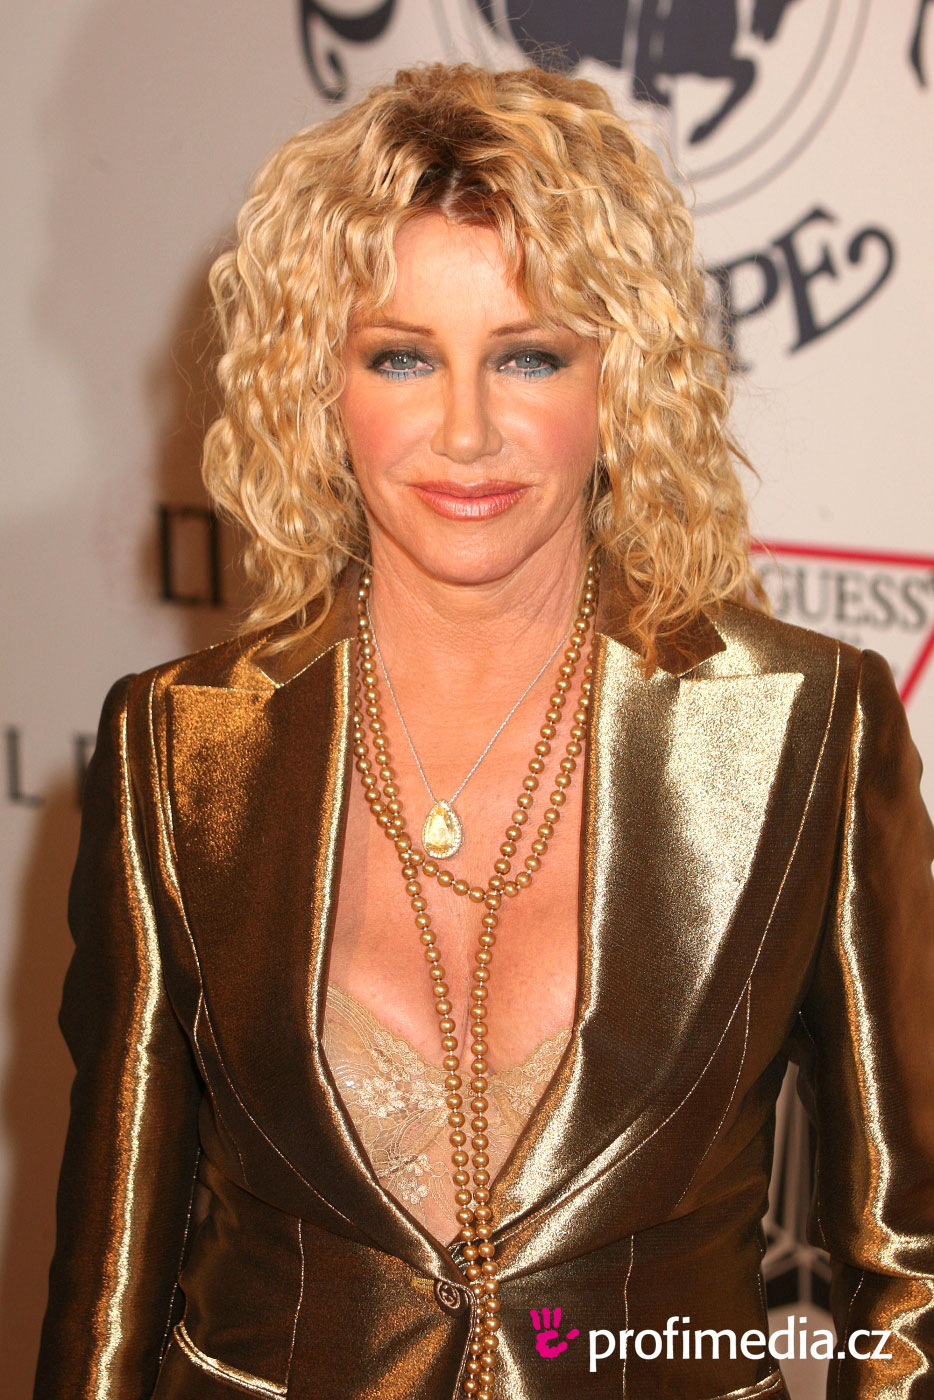 Suzanne Somers Hairstyle Easyhairstyler